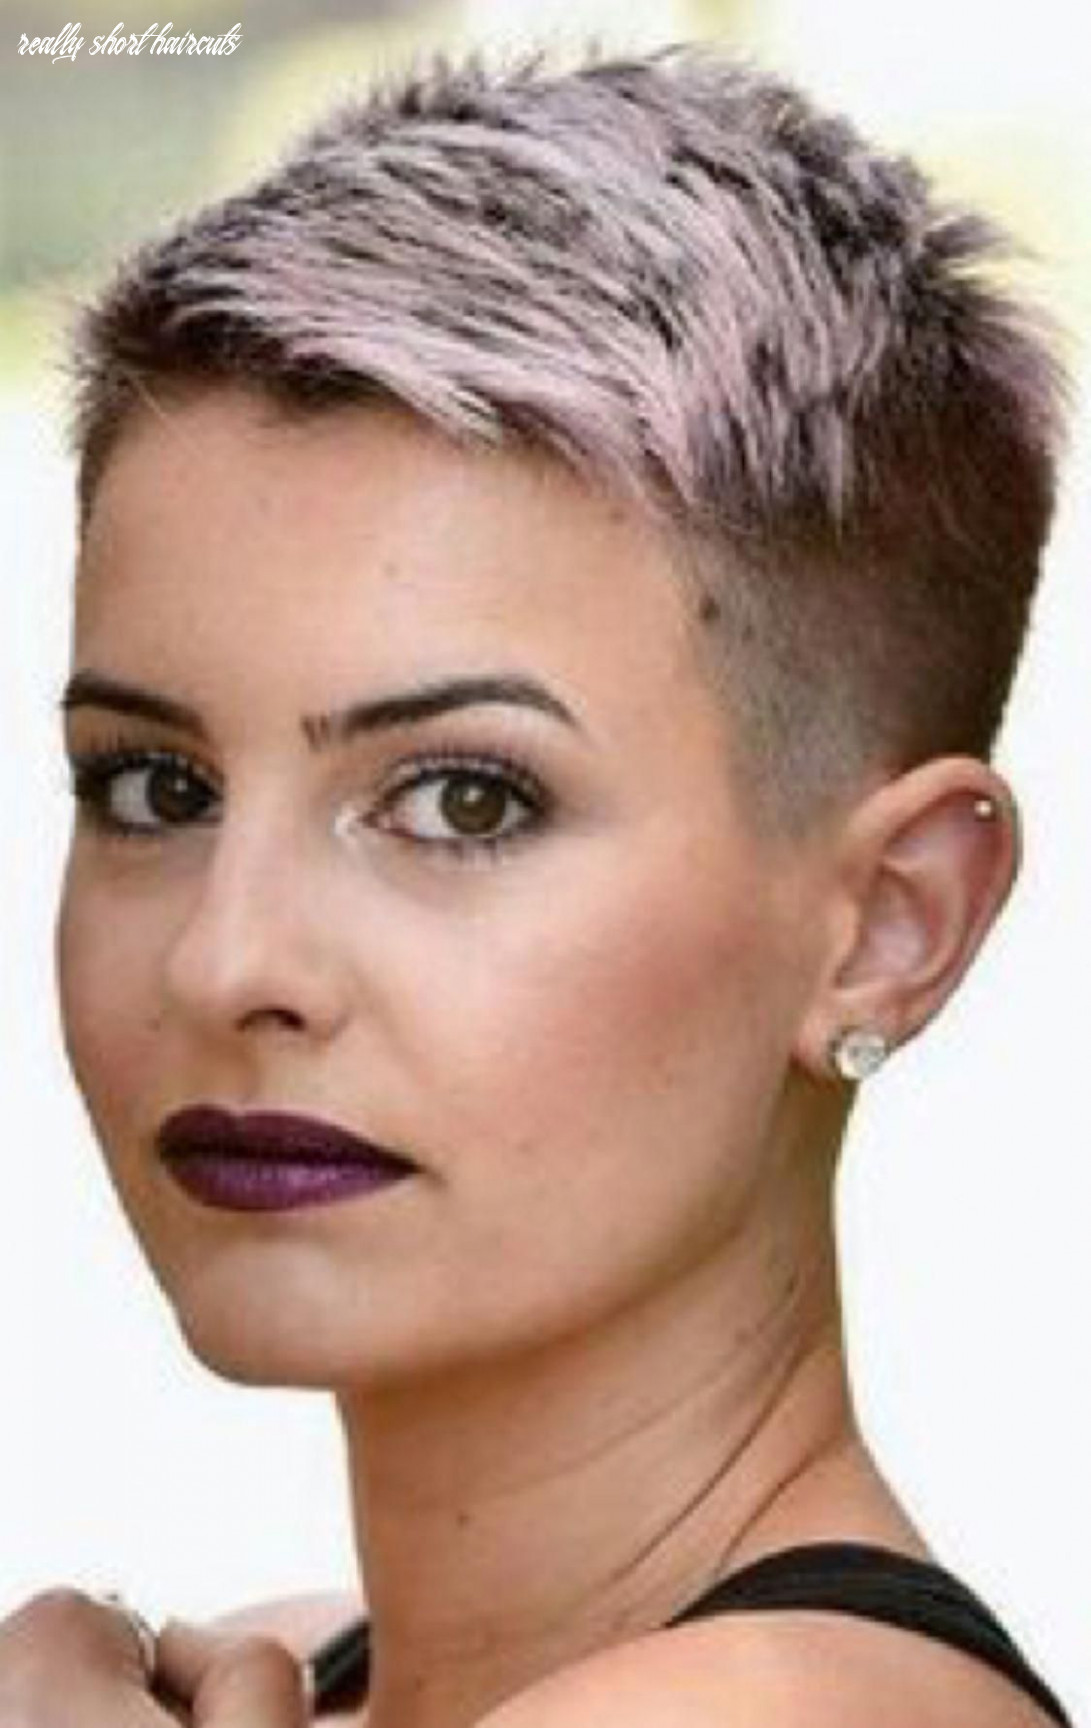 These cute short girl hairstyles really are amazing